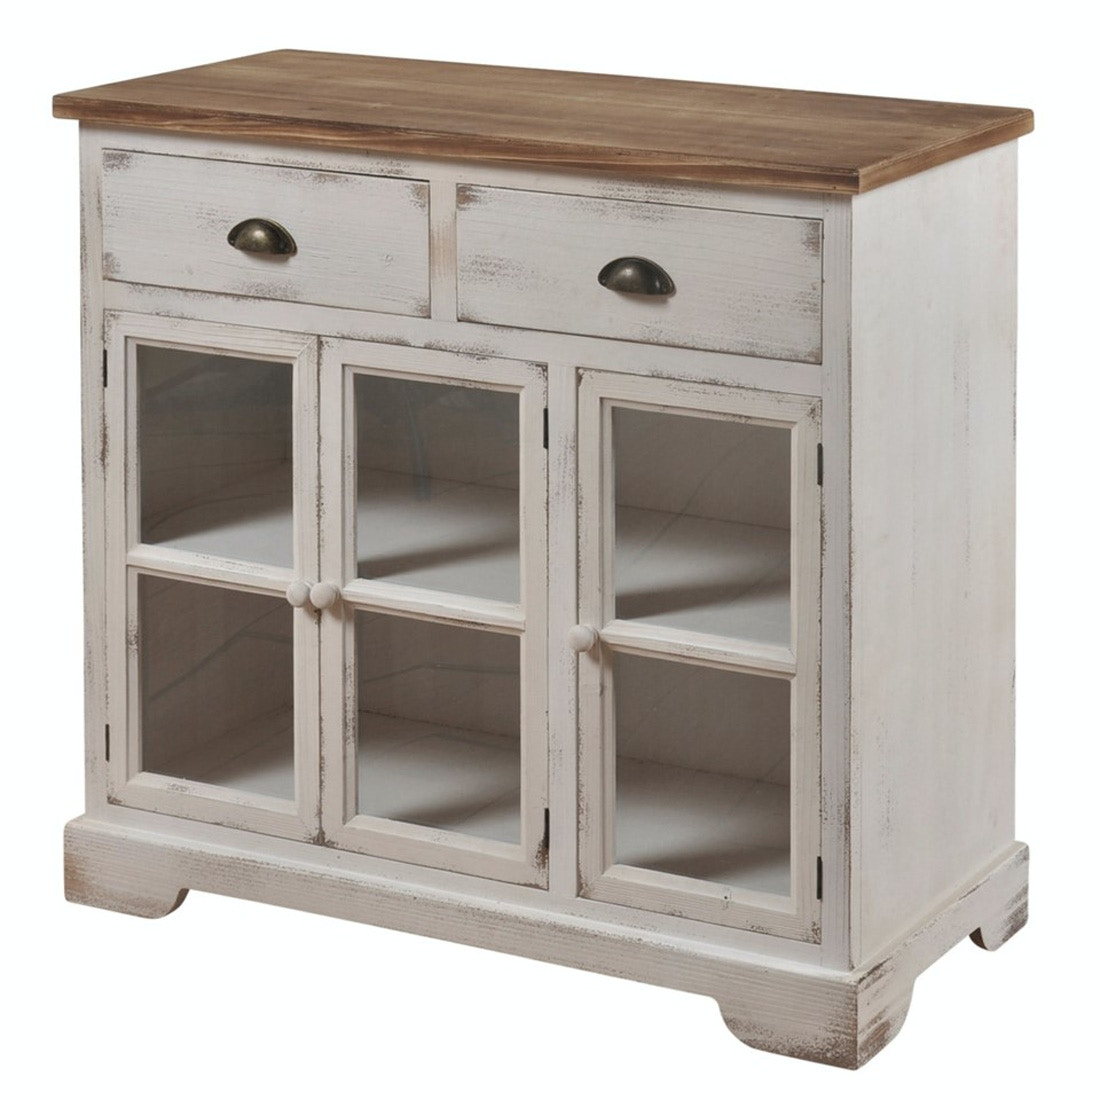 Awesome Shabby Chic Three Door, Two Drawer Cabinet With Window Pane, Tempered Clear  Glass Door Panels. White With Brown Top. Window Pane Cabinet 057722  Stylecraft ...